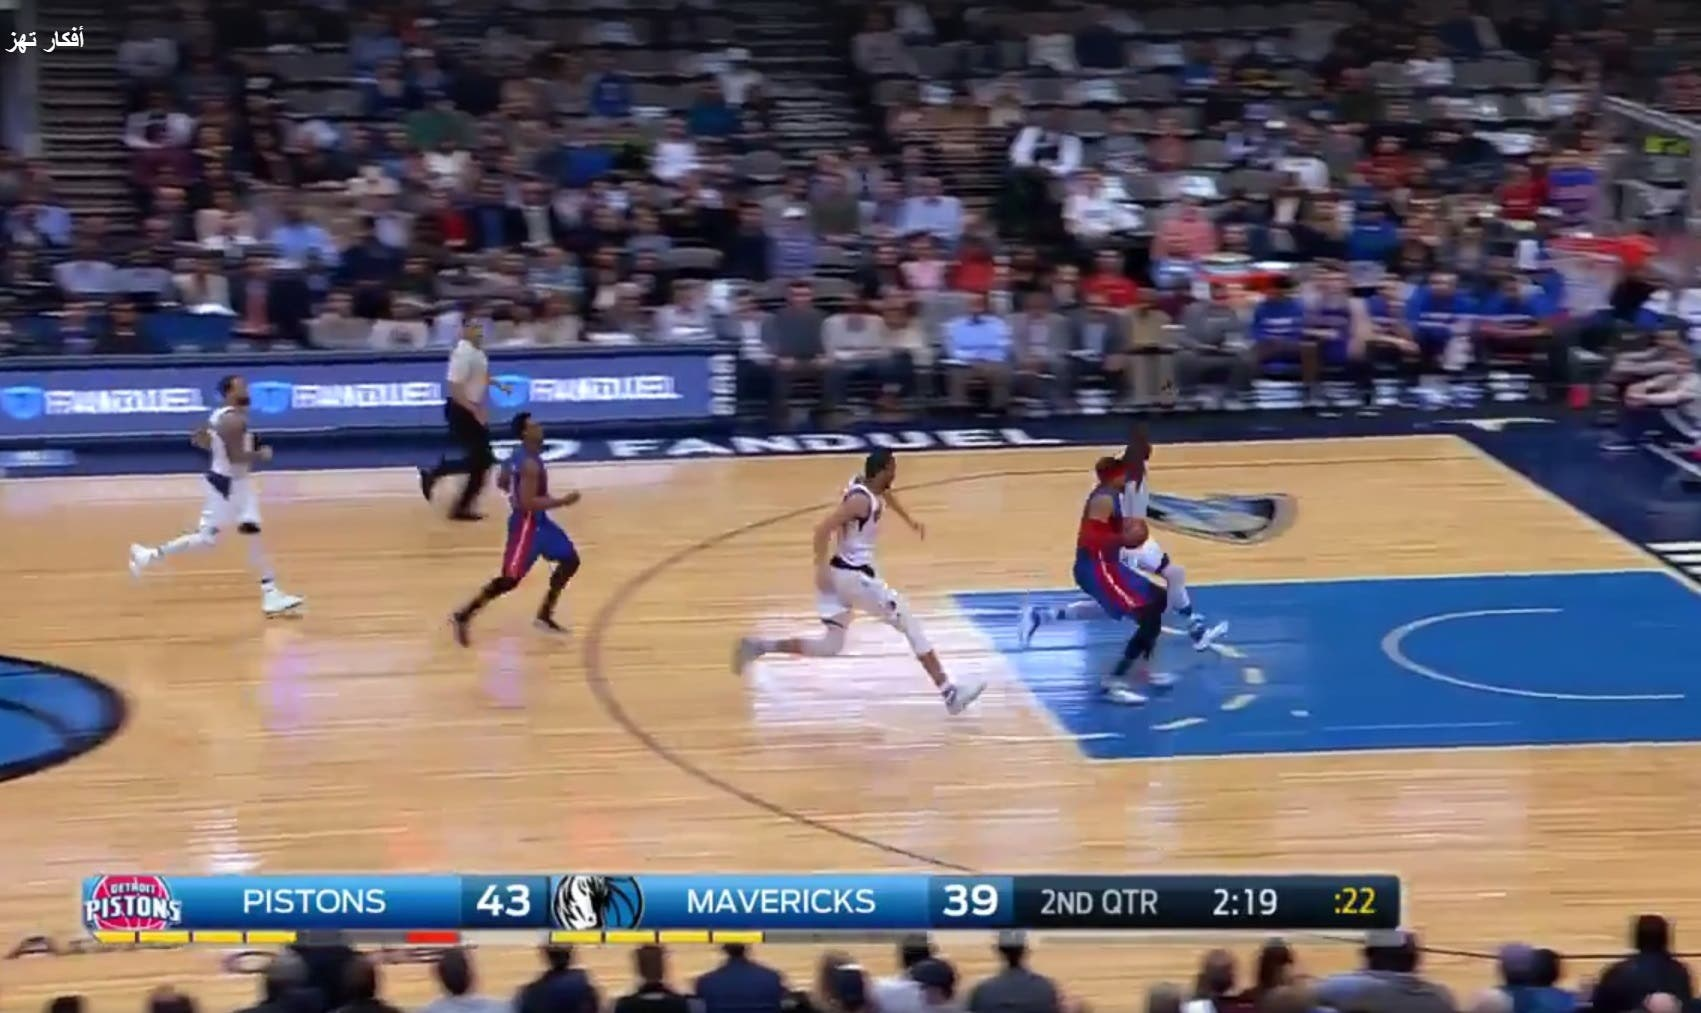 Harris goes for the lay-up. (Screengrab)